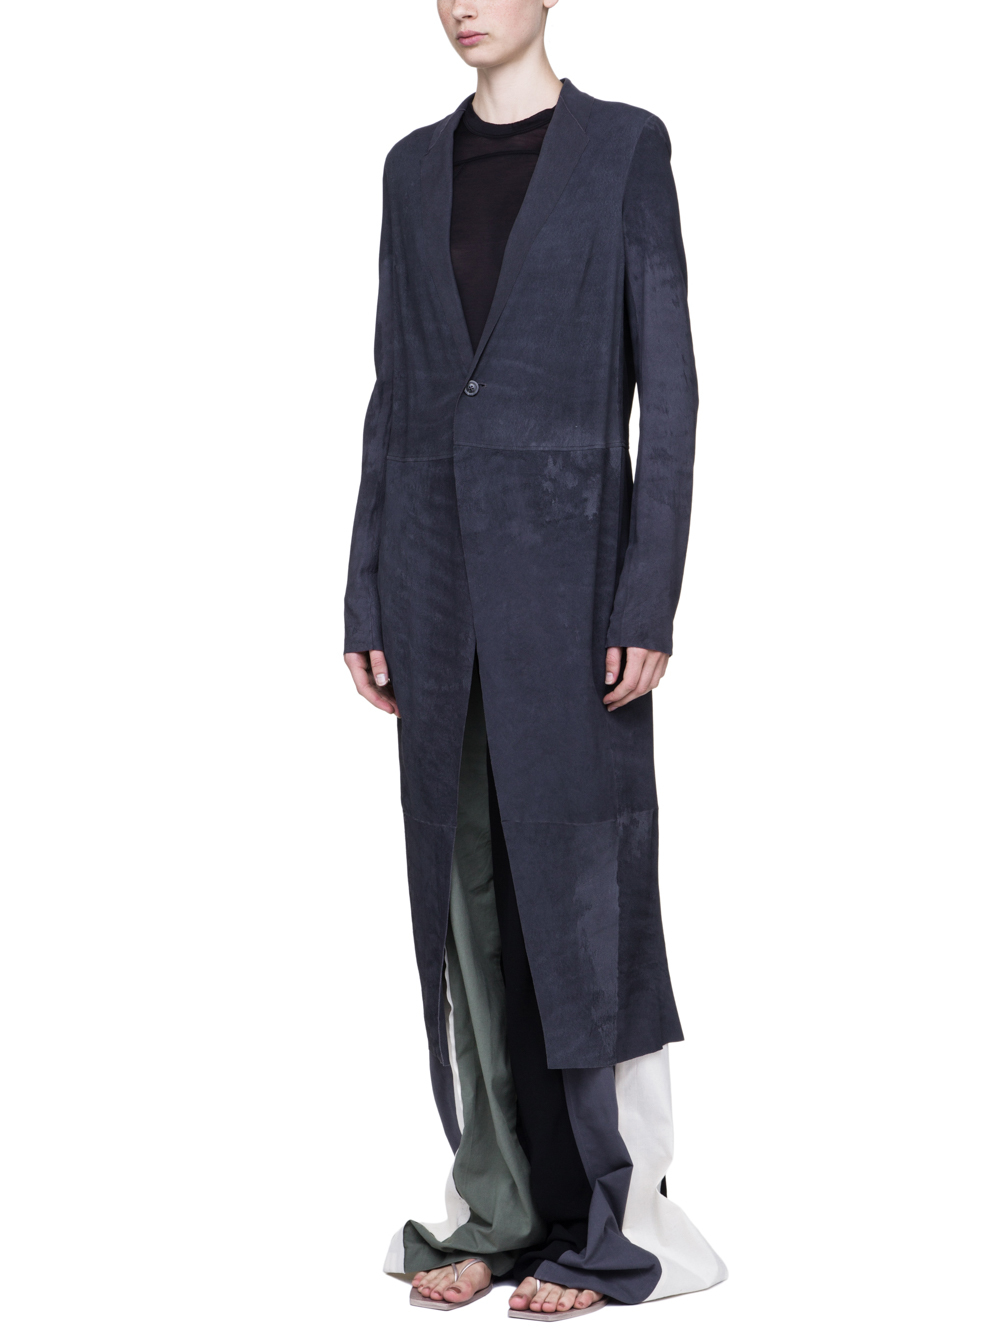 RICK OWENS SOFT KNIFE COAT IN IRON DARK PURPLE BLISTER LAMB LEATHER